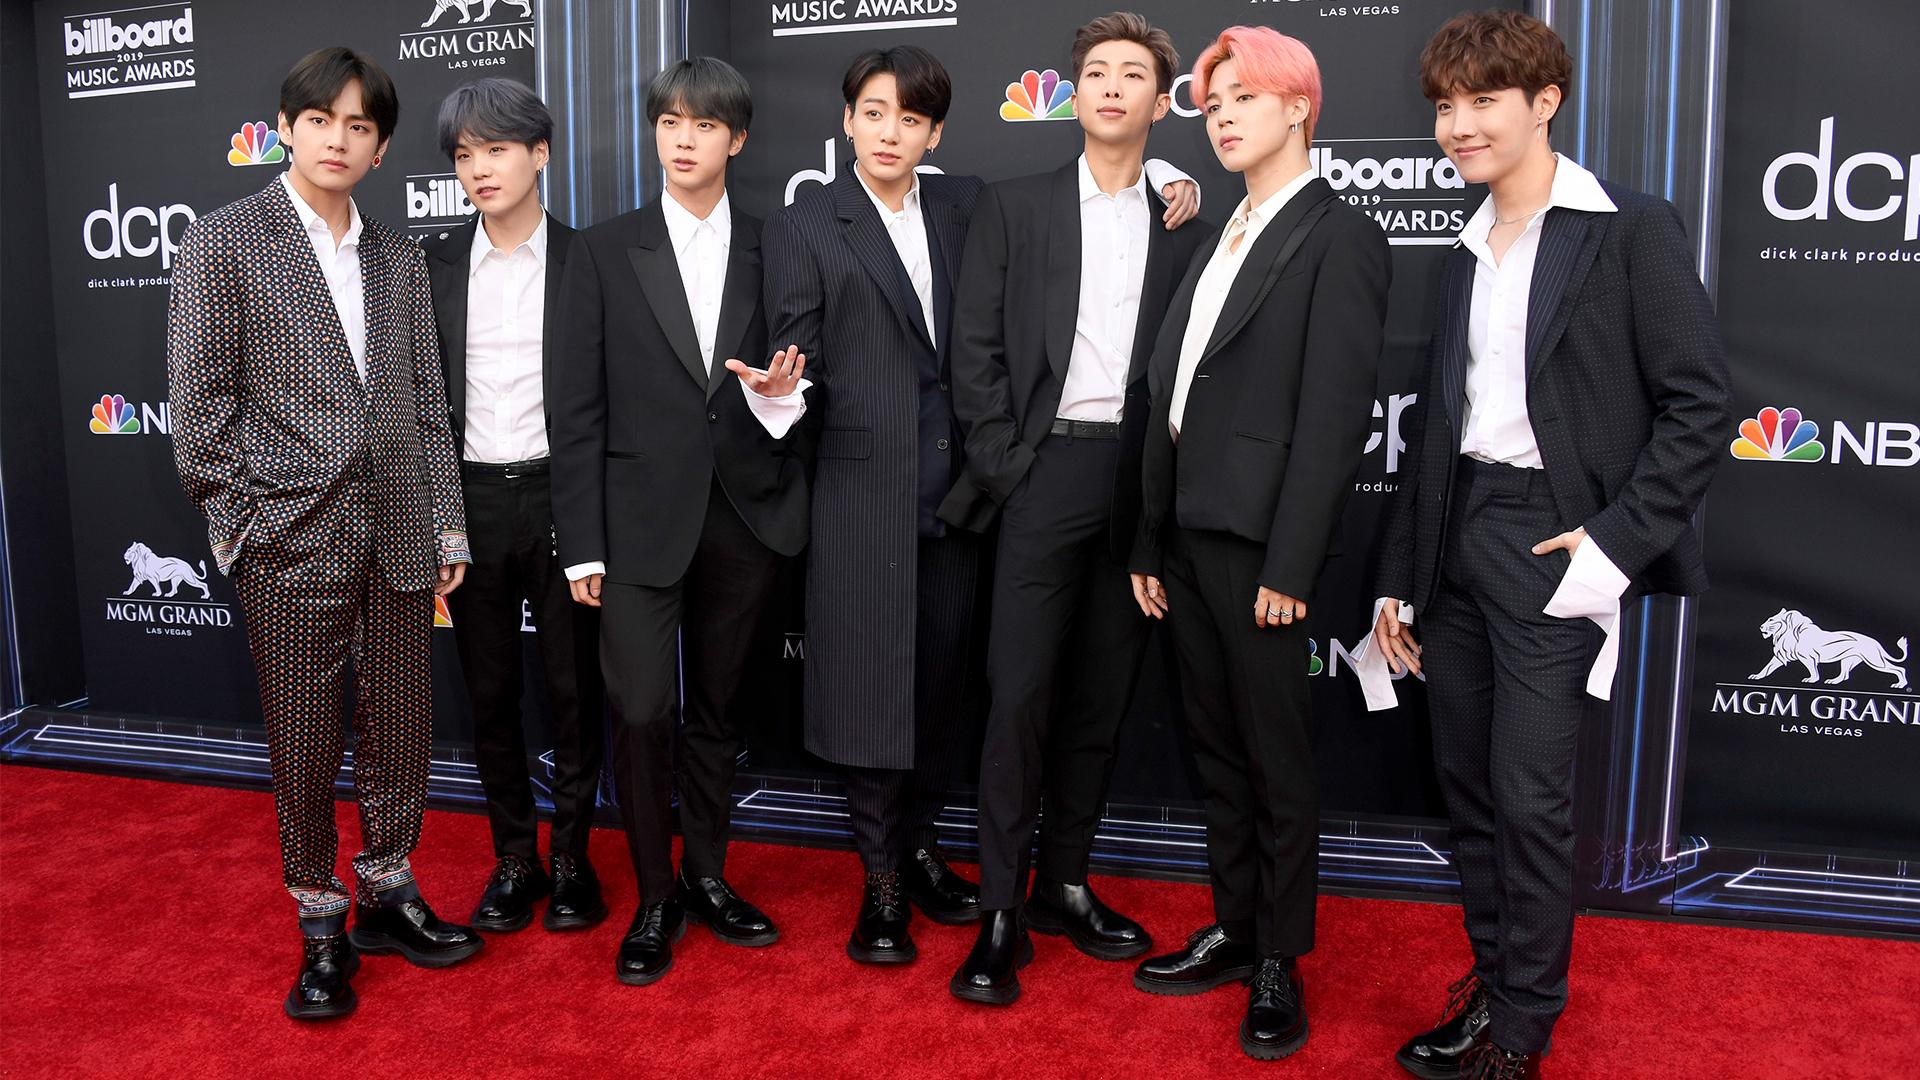 BTS Shares Message of Love for Fans After Winning Big at